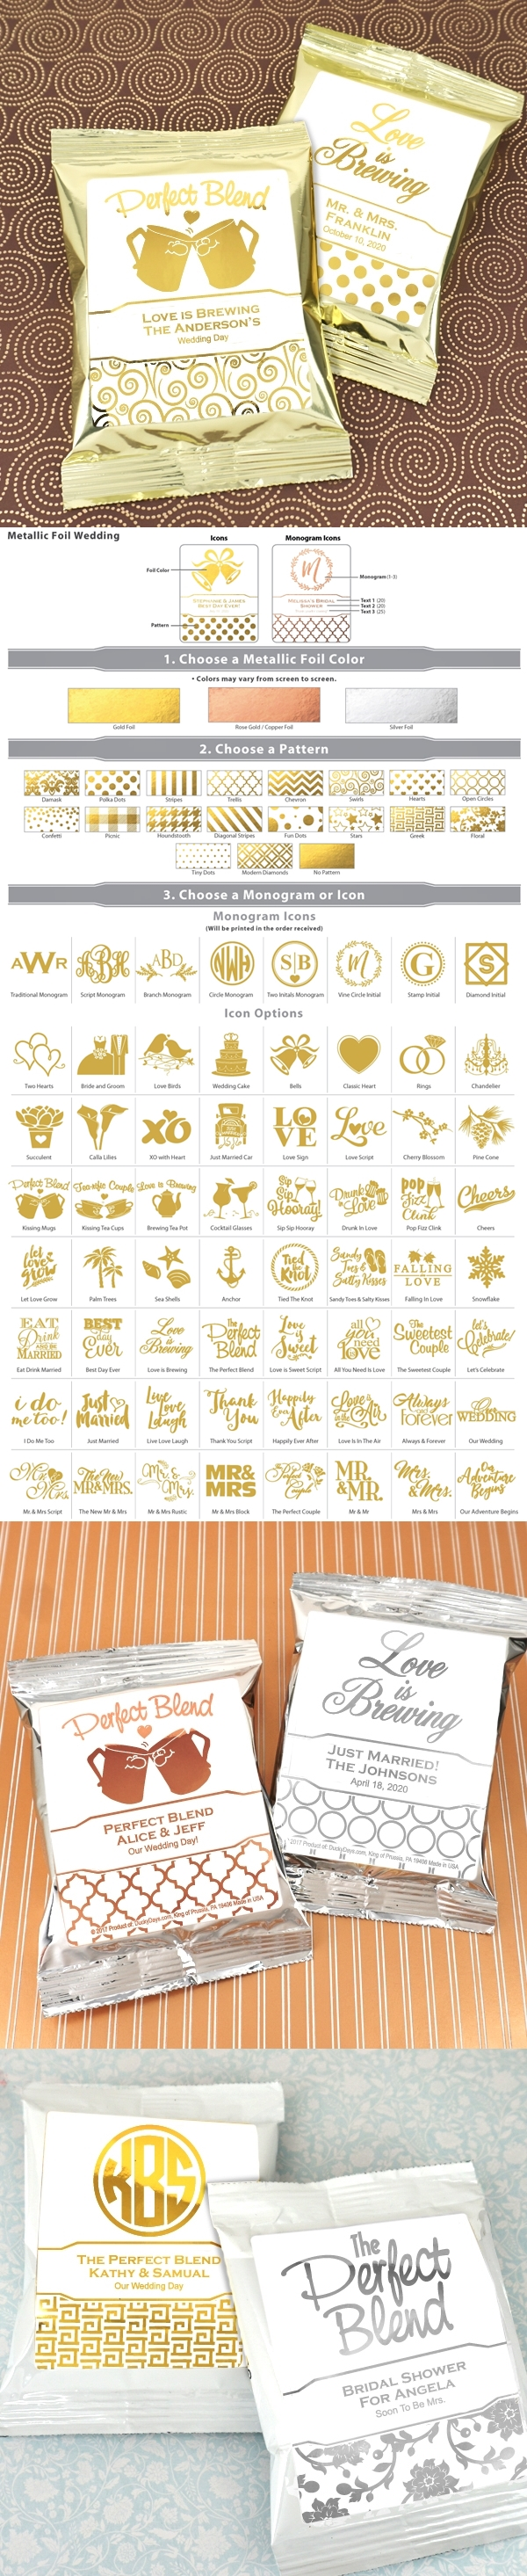 Coffee Packs with Personalized Metallic Foil Stickers (64 Designs)